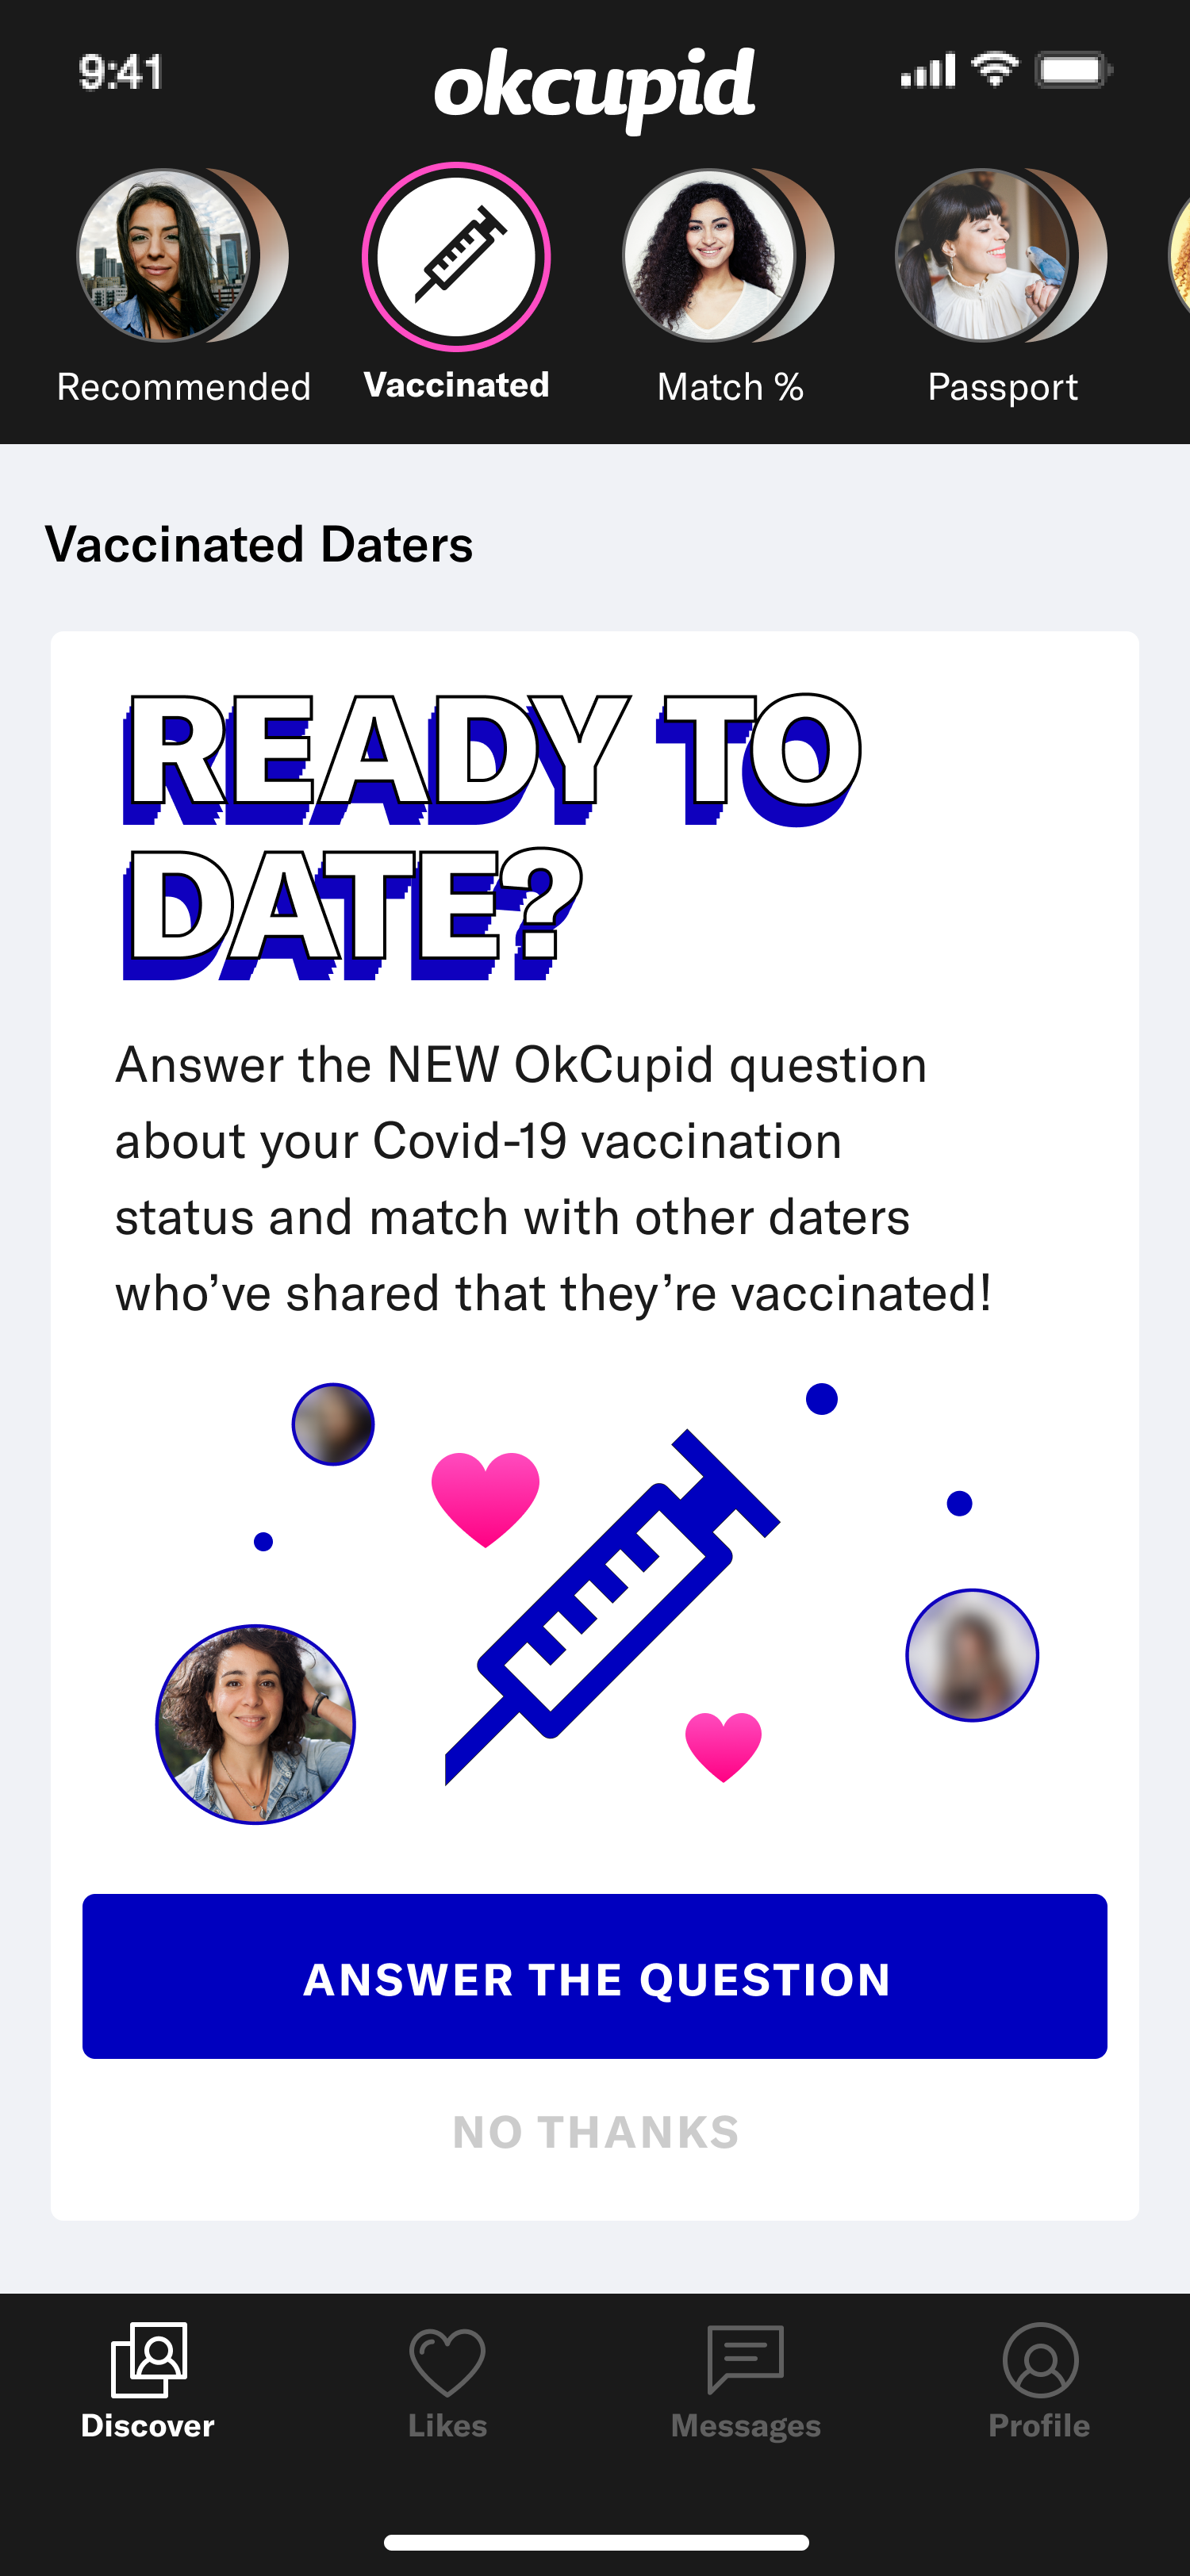 okcupid-vaccinated-daters.png